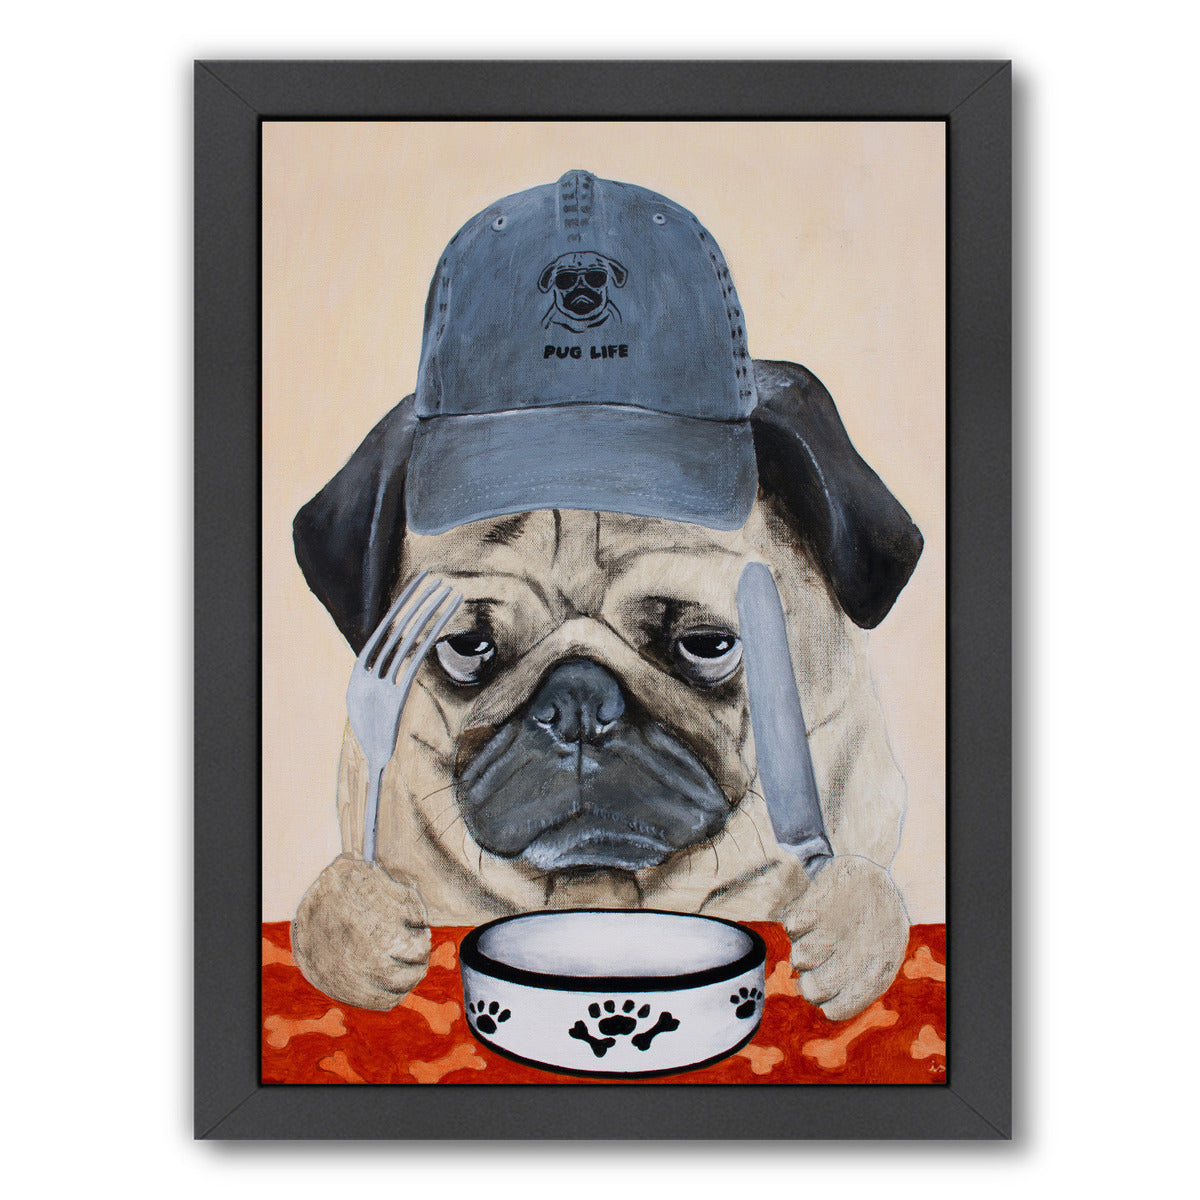 Pug Life By Coco De Paris - Black Framed Print - Wall Art - Americanflat